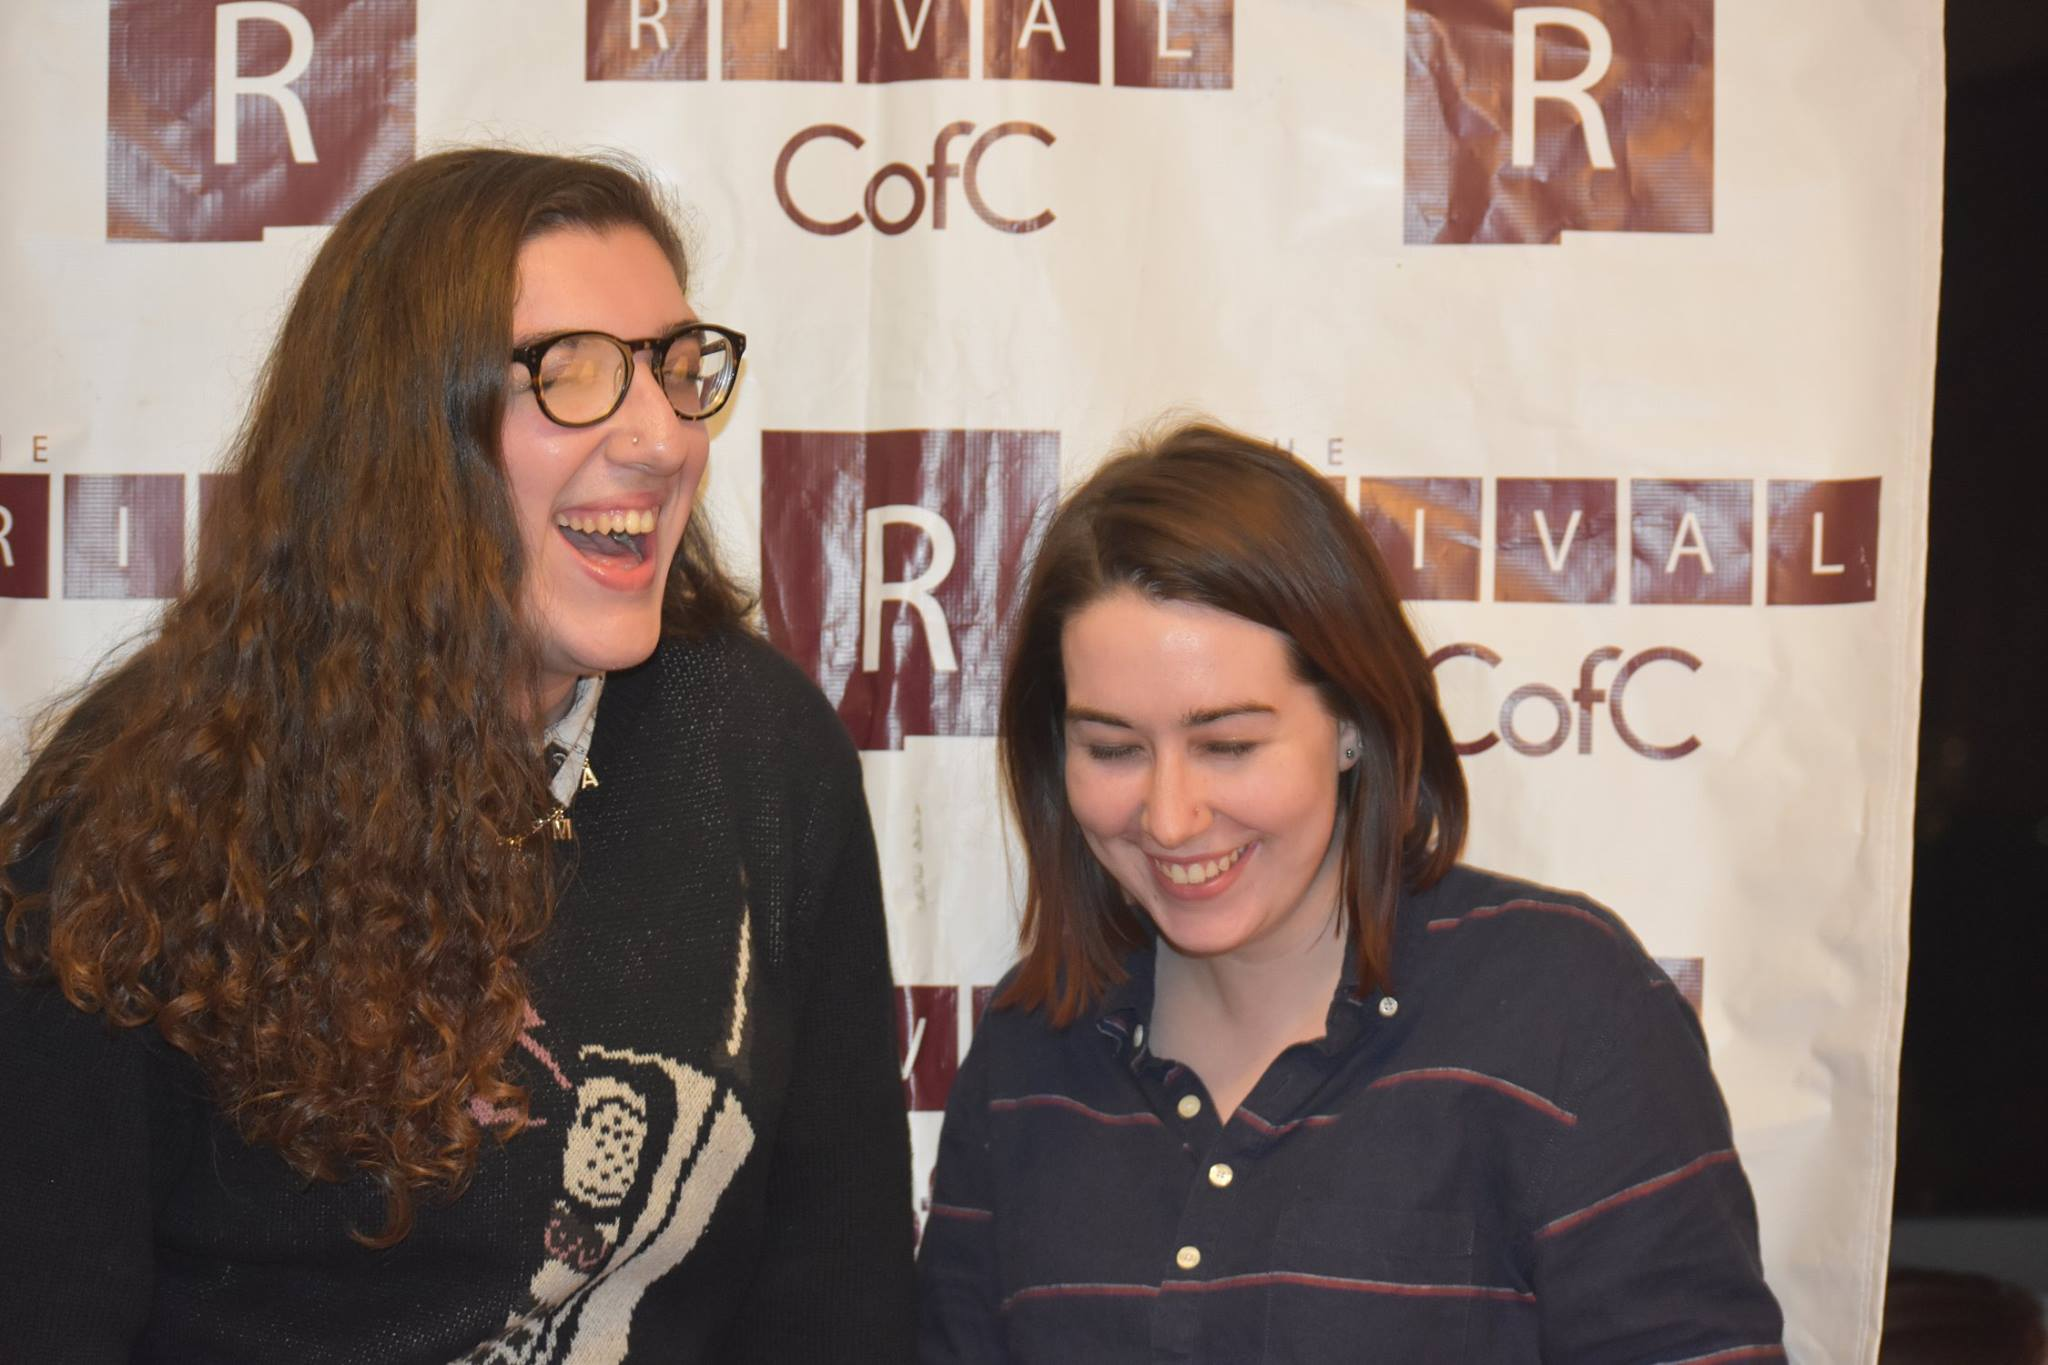 Founder/former Managing Editor Meredith Wohl & former Director of Communications Allie Stubbs, 2017